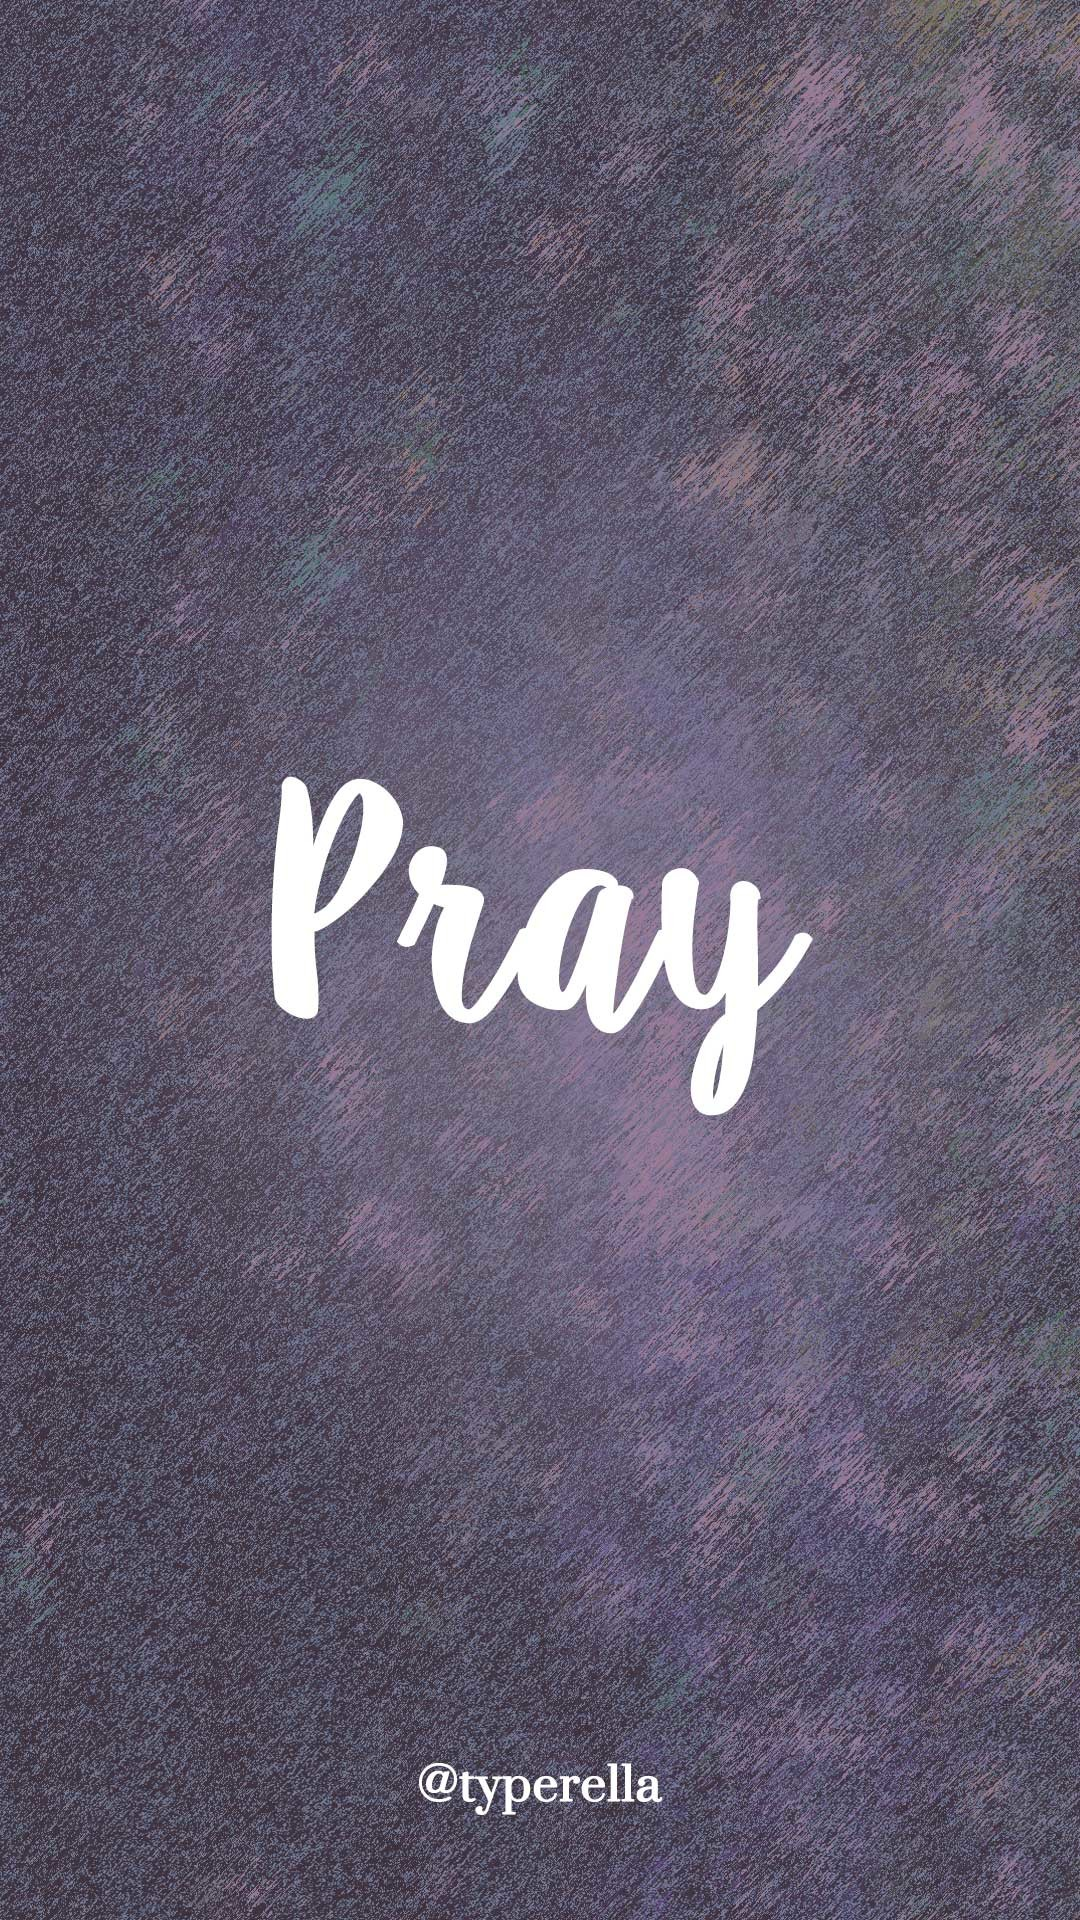 1080x1920 https://typerella.net/free-phone-wallpapers #pray #